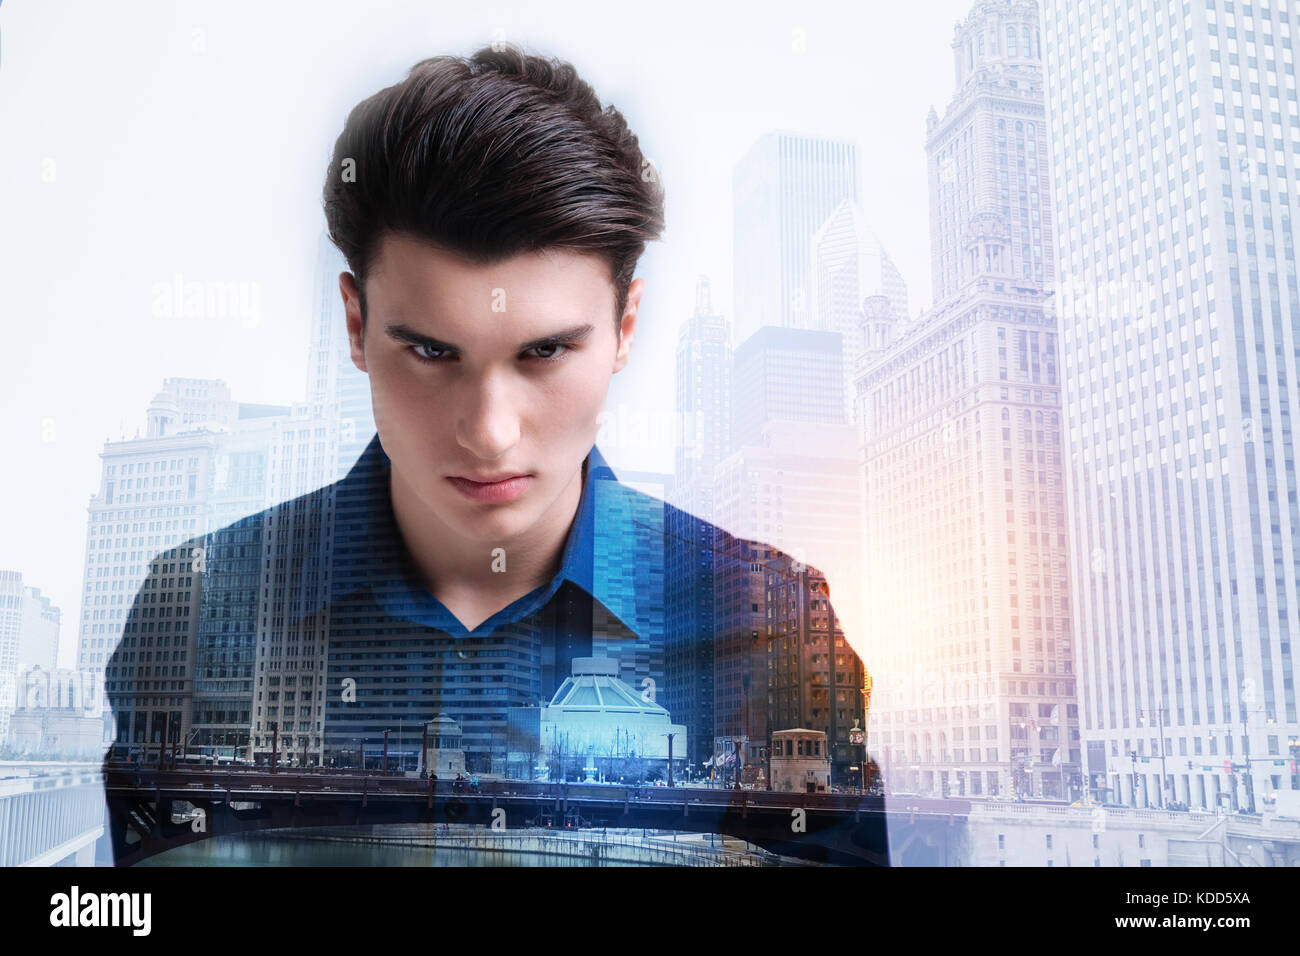 Furious teenager looking at you with negativity - Stock Image